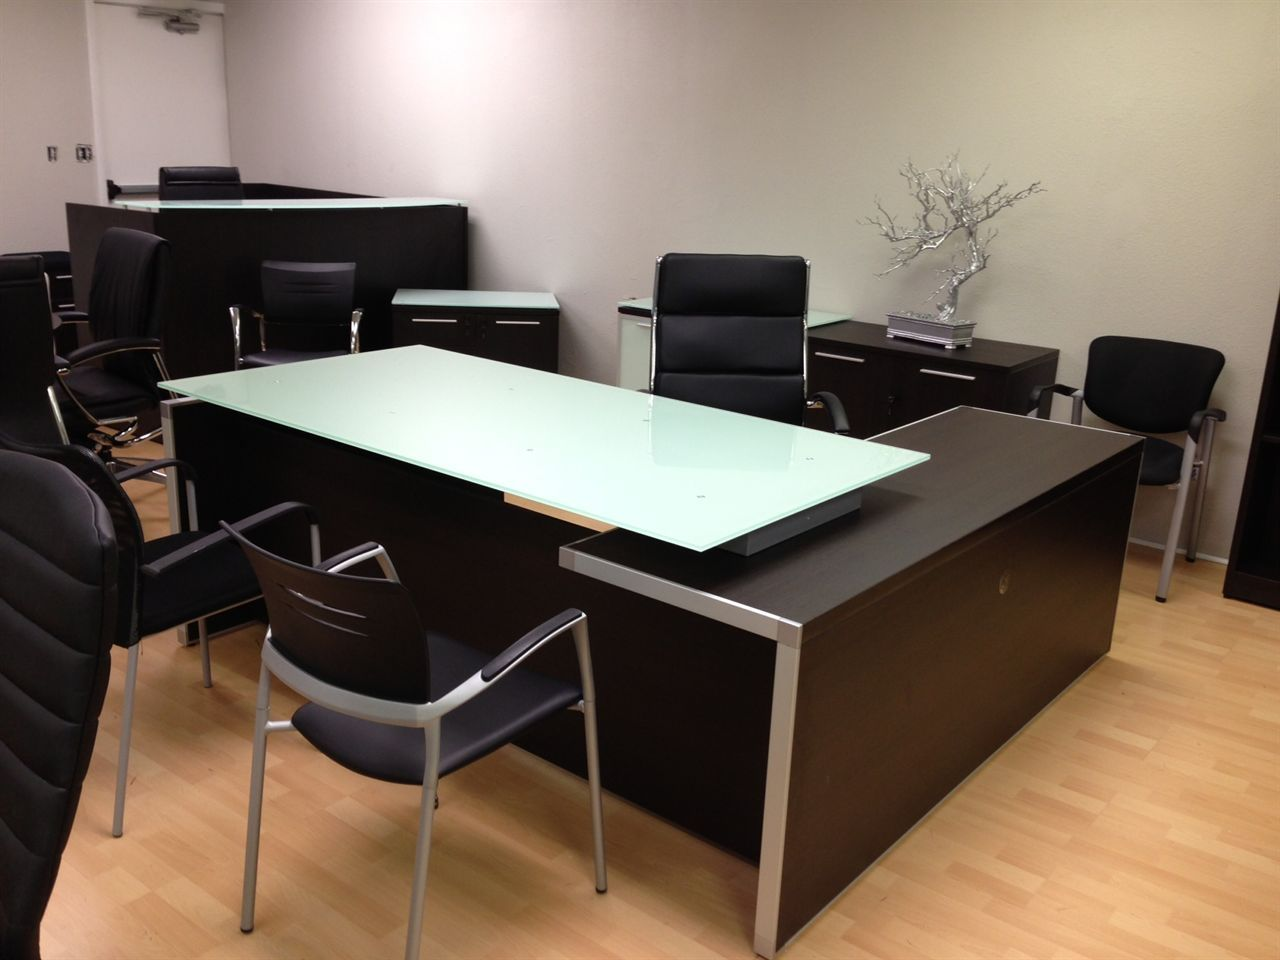 Chiarpe8675 1. Chiarpe8675 1. Chiarezza Executive L Desk ...